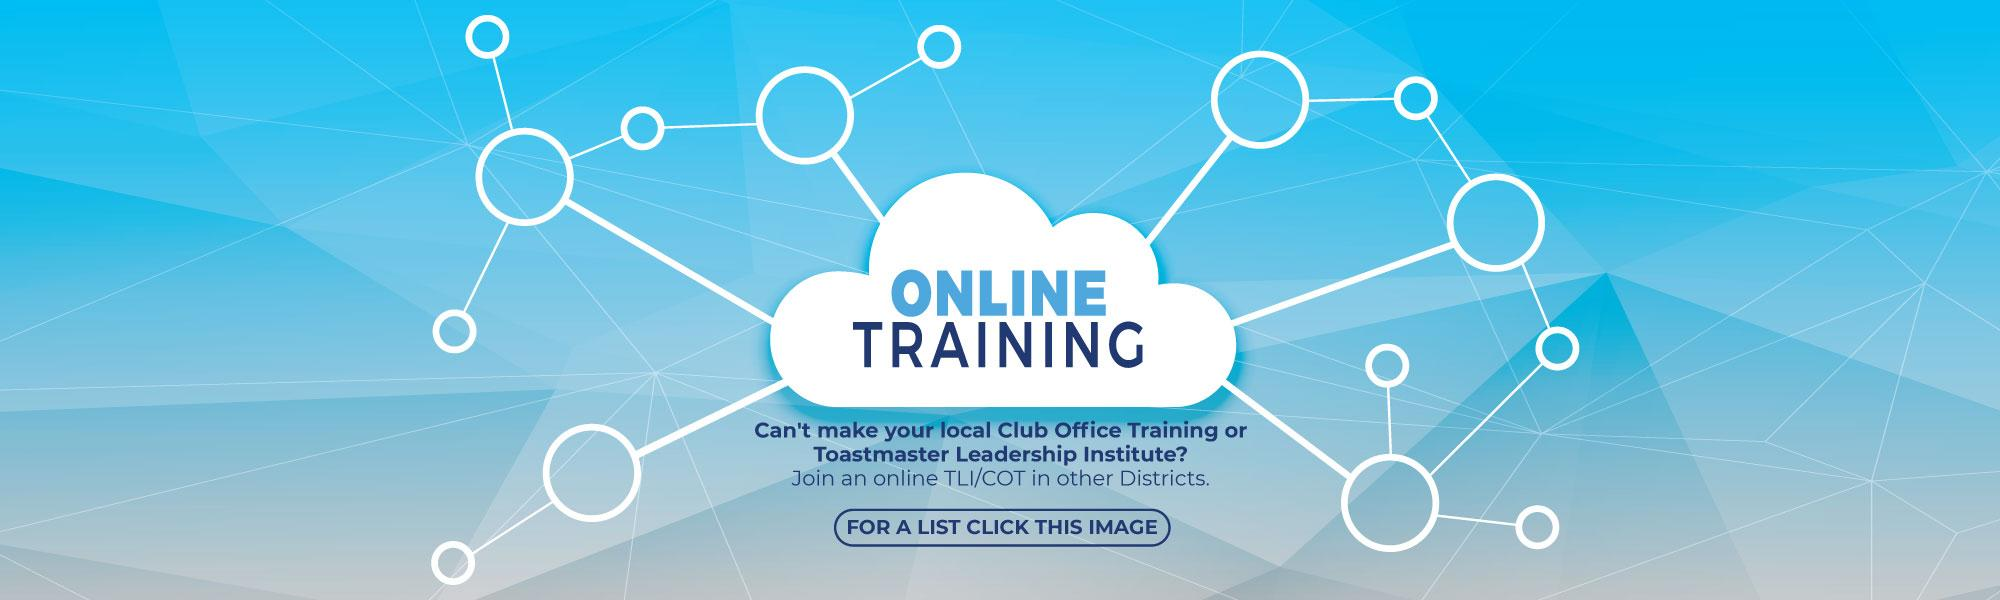 Club Officer Training Online